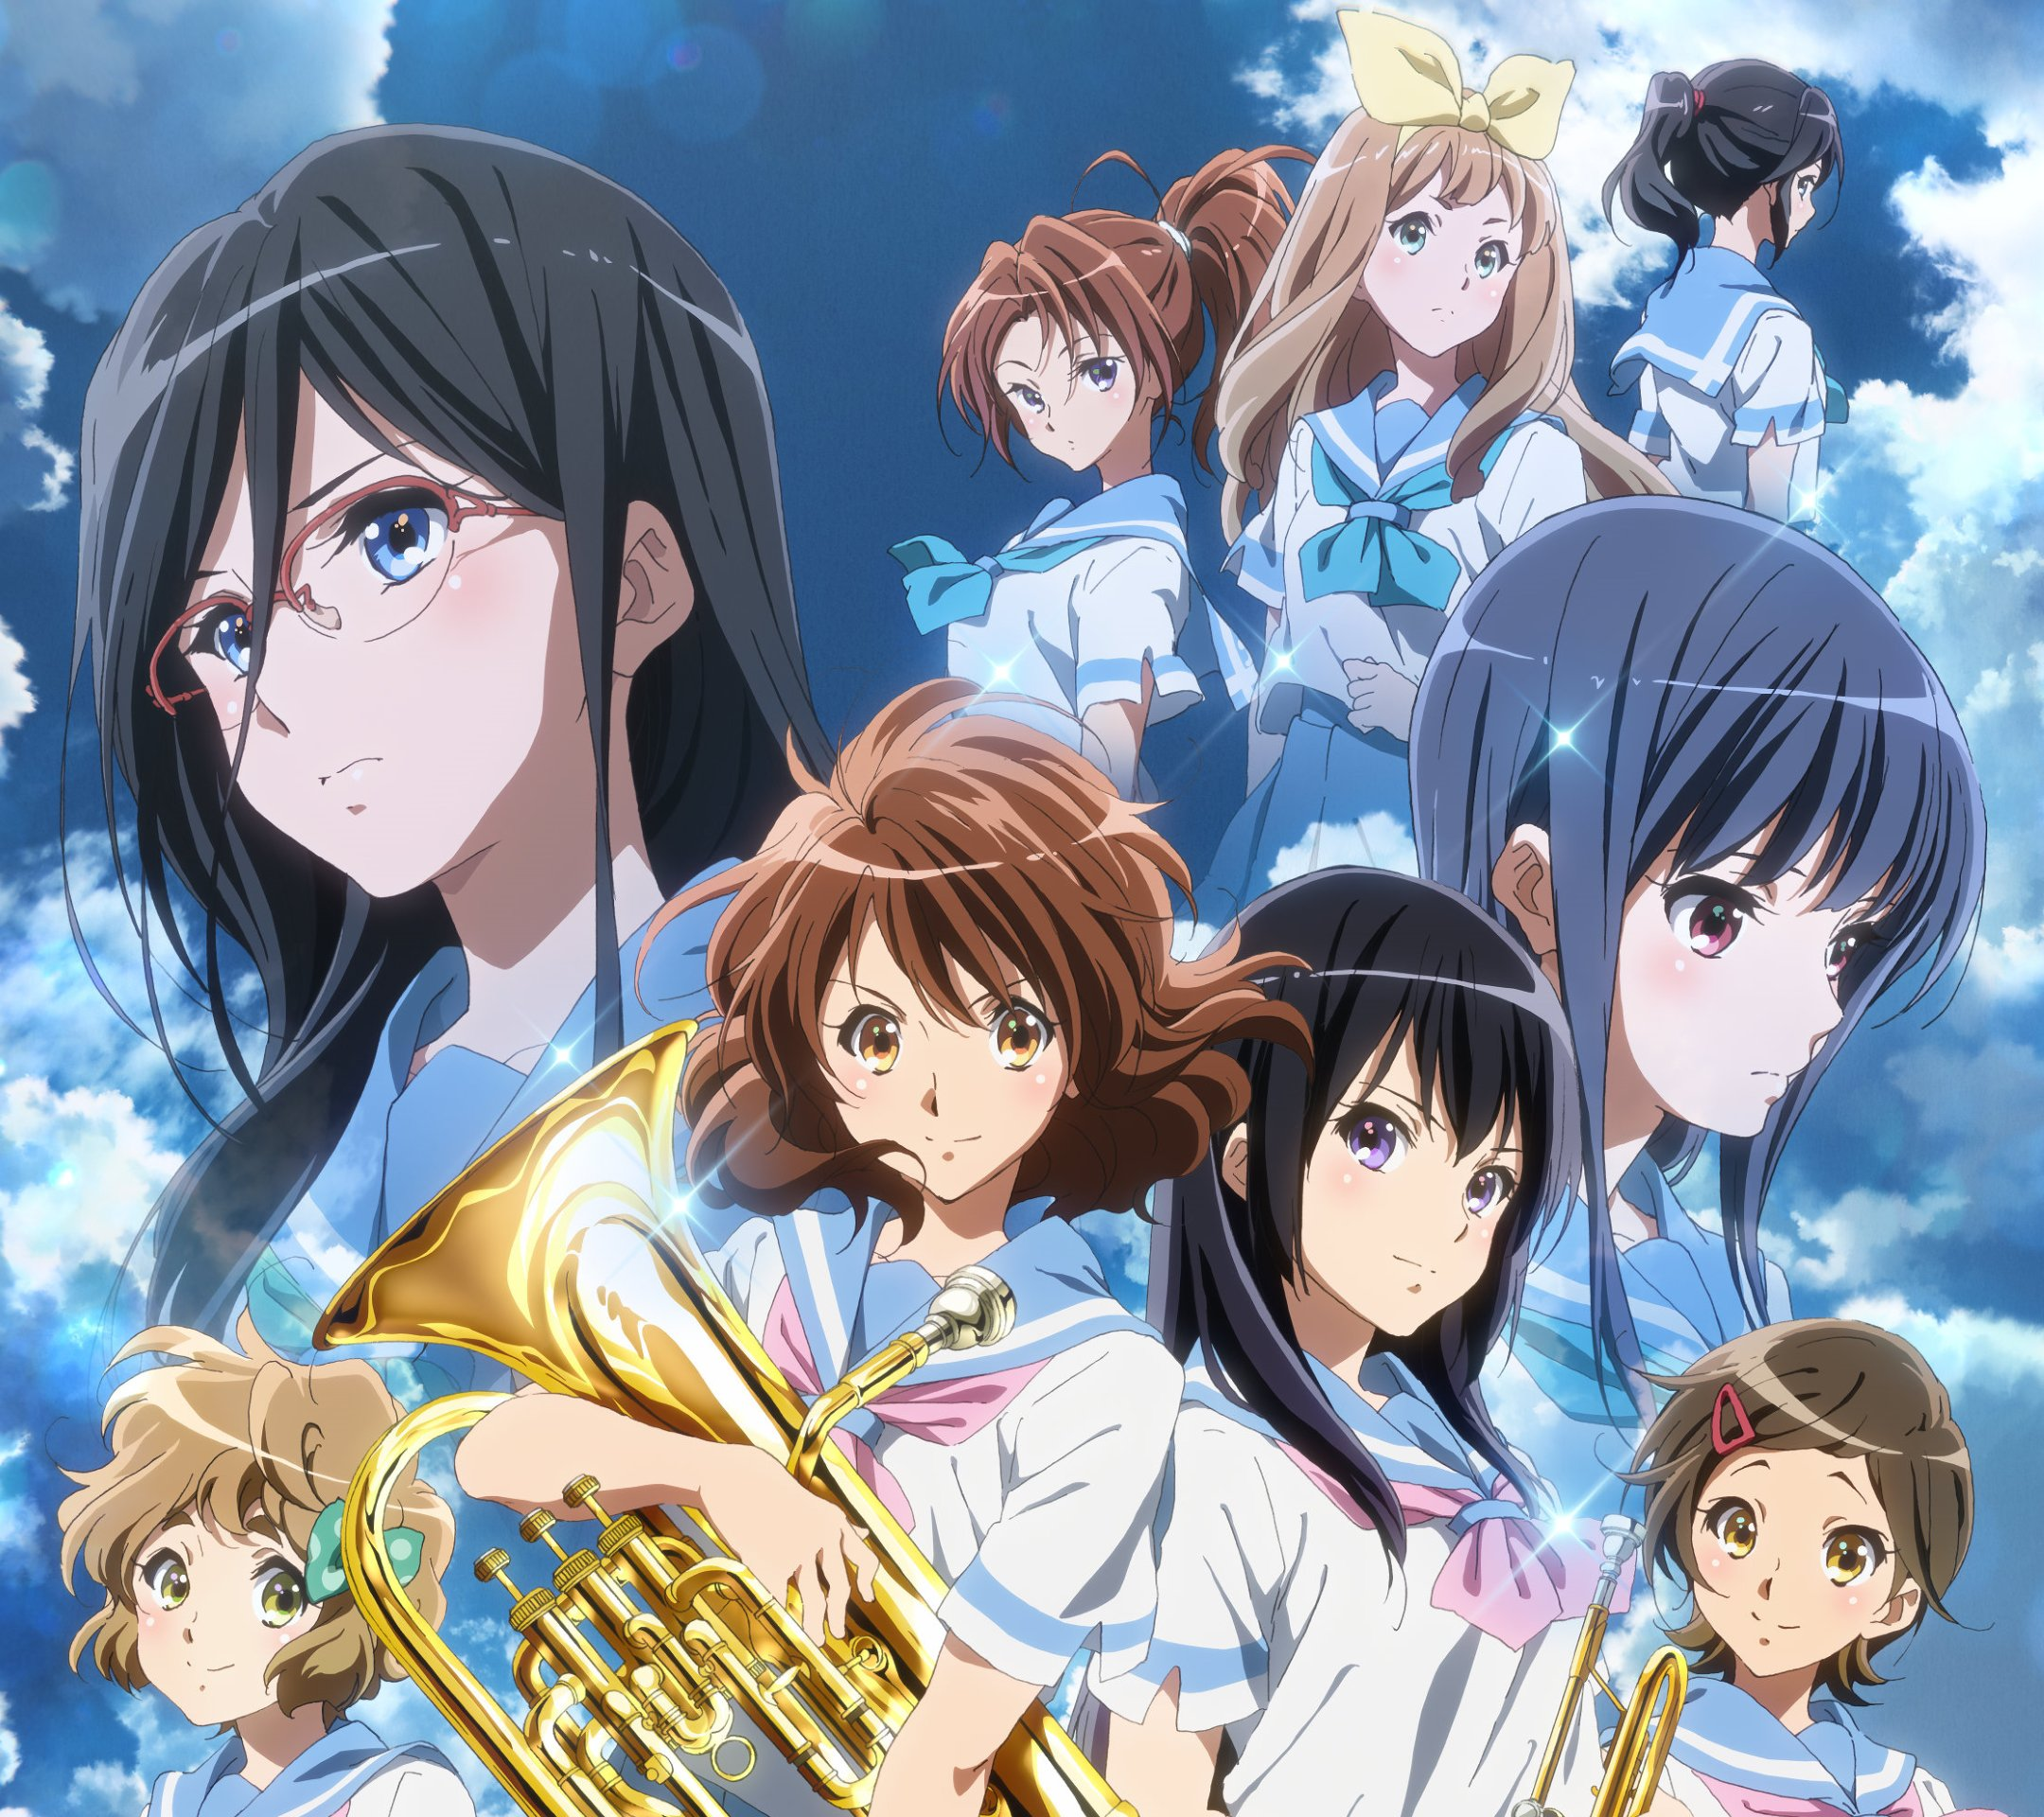 Hibike Euphonium.Android wallpaper 2160x1920